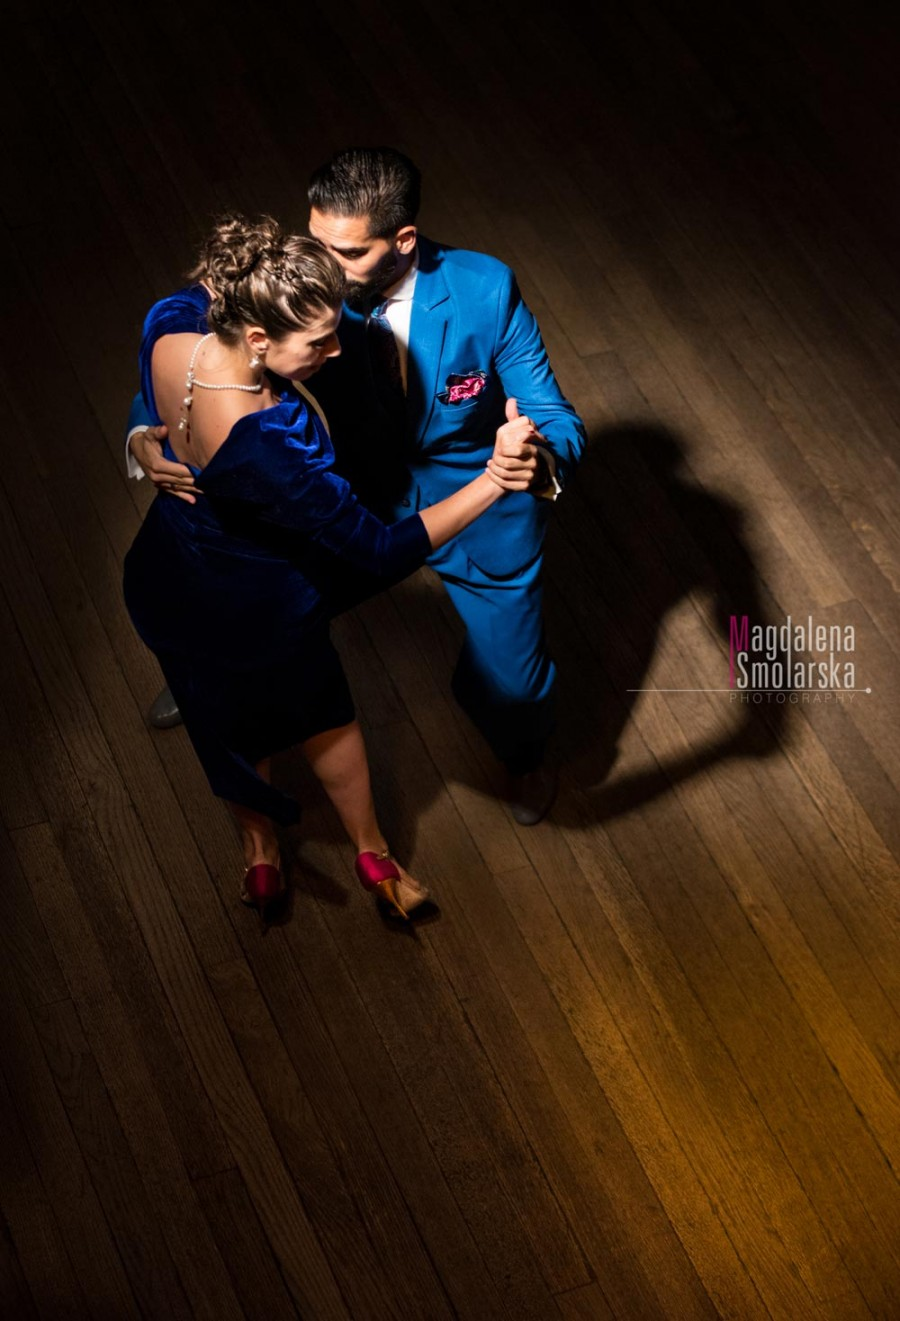 Tango Photo of the Month by Magdalena Smolarska – June 2017